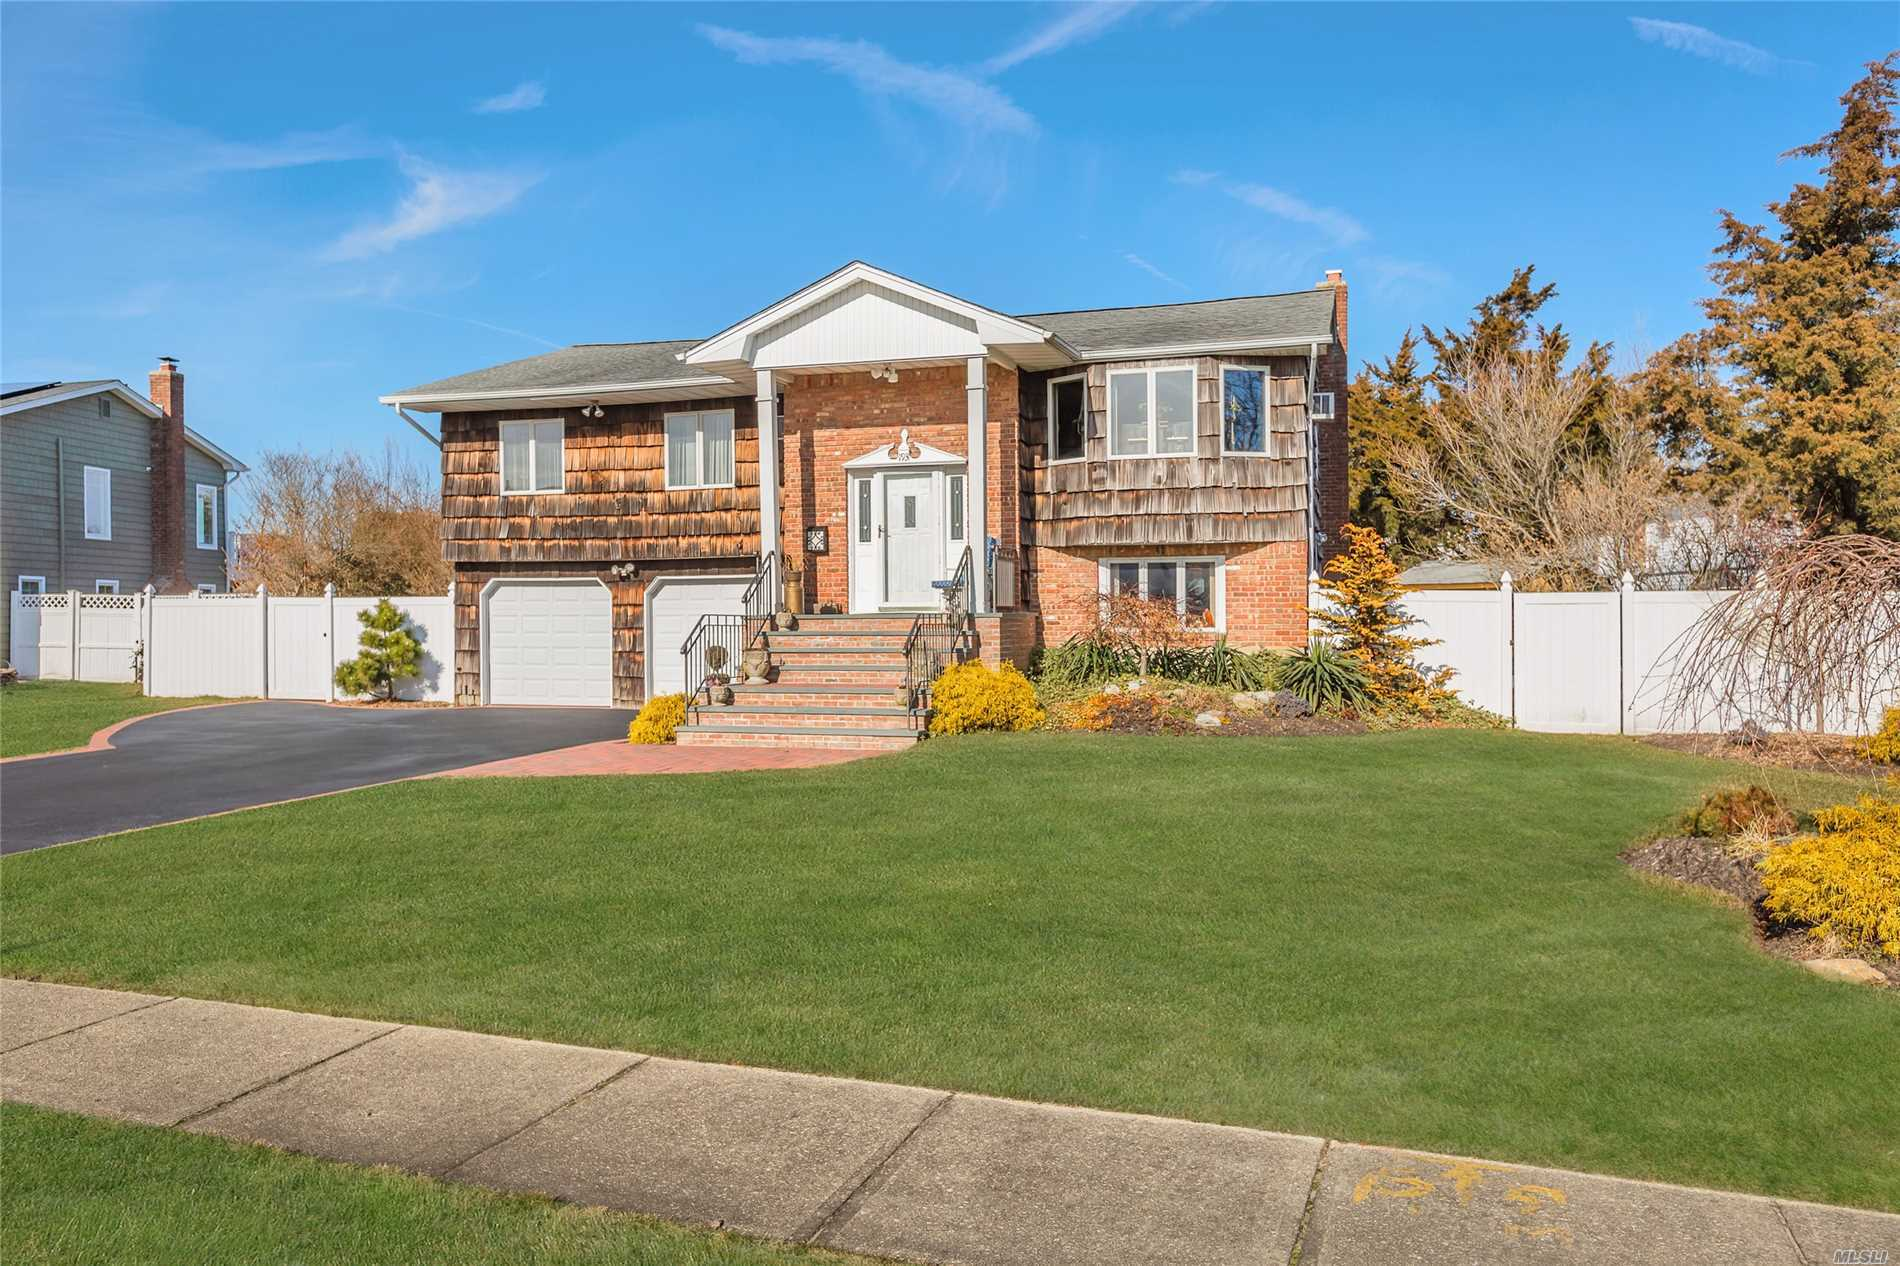 Captree Landings Waterfront Home South Of Montauk Highway On A Cul-De-Sac. This Home Is Wonderful For Entertaining Offering A Heated Igp 18X36, 2 Wooden Decks, Patio Pavers,  35' Navy Bulkheading 2013, New Pavers And Stoop, Eik W/ S/S Appliances & Granite Counters & Much More! Basic Star $1, 164.37. Attic With Pull Down Stairs.